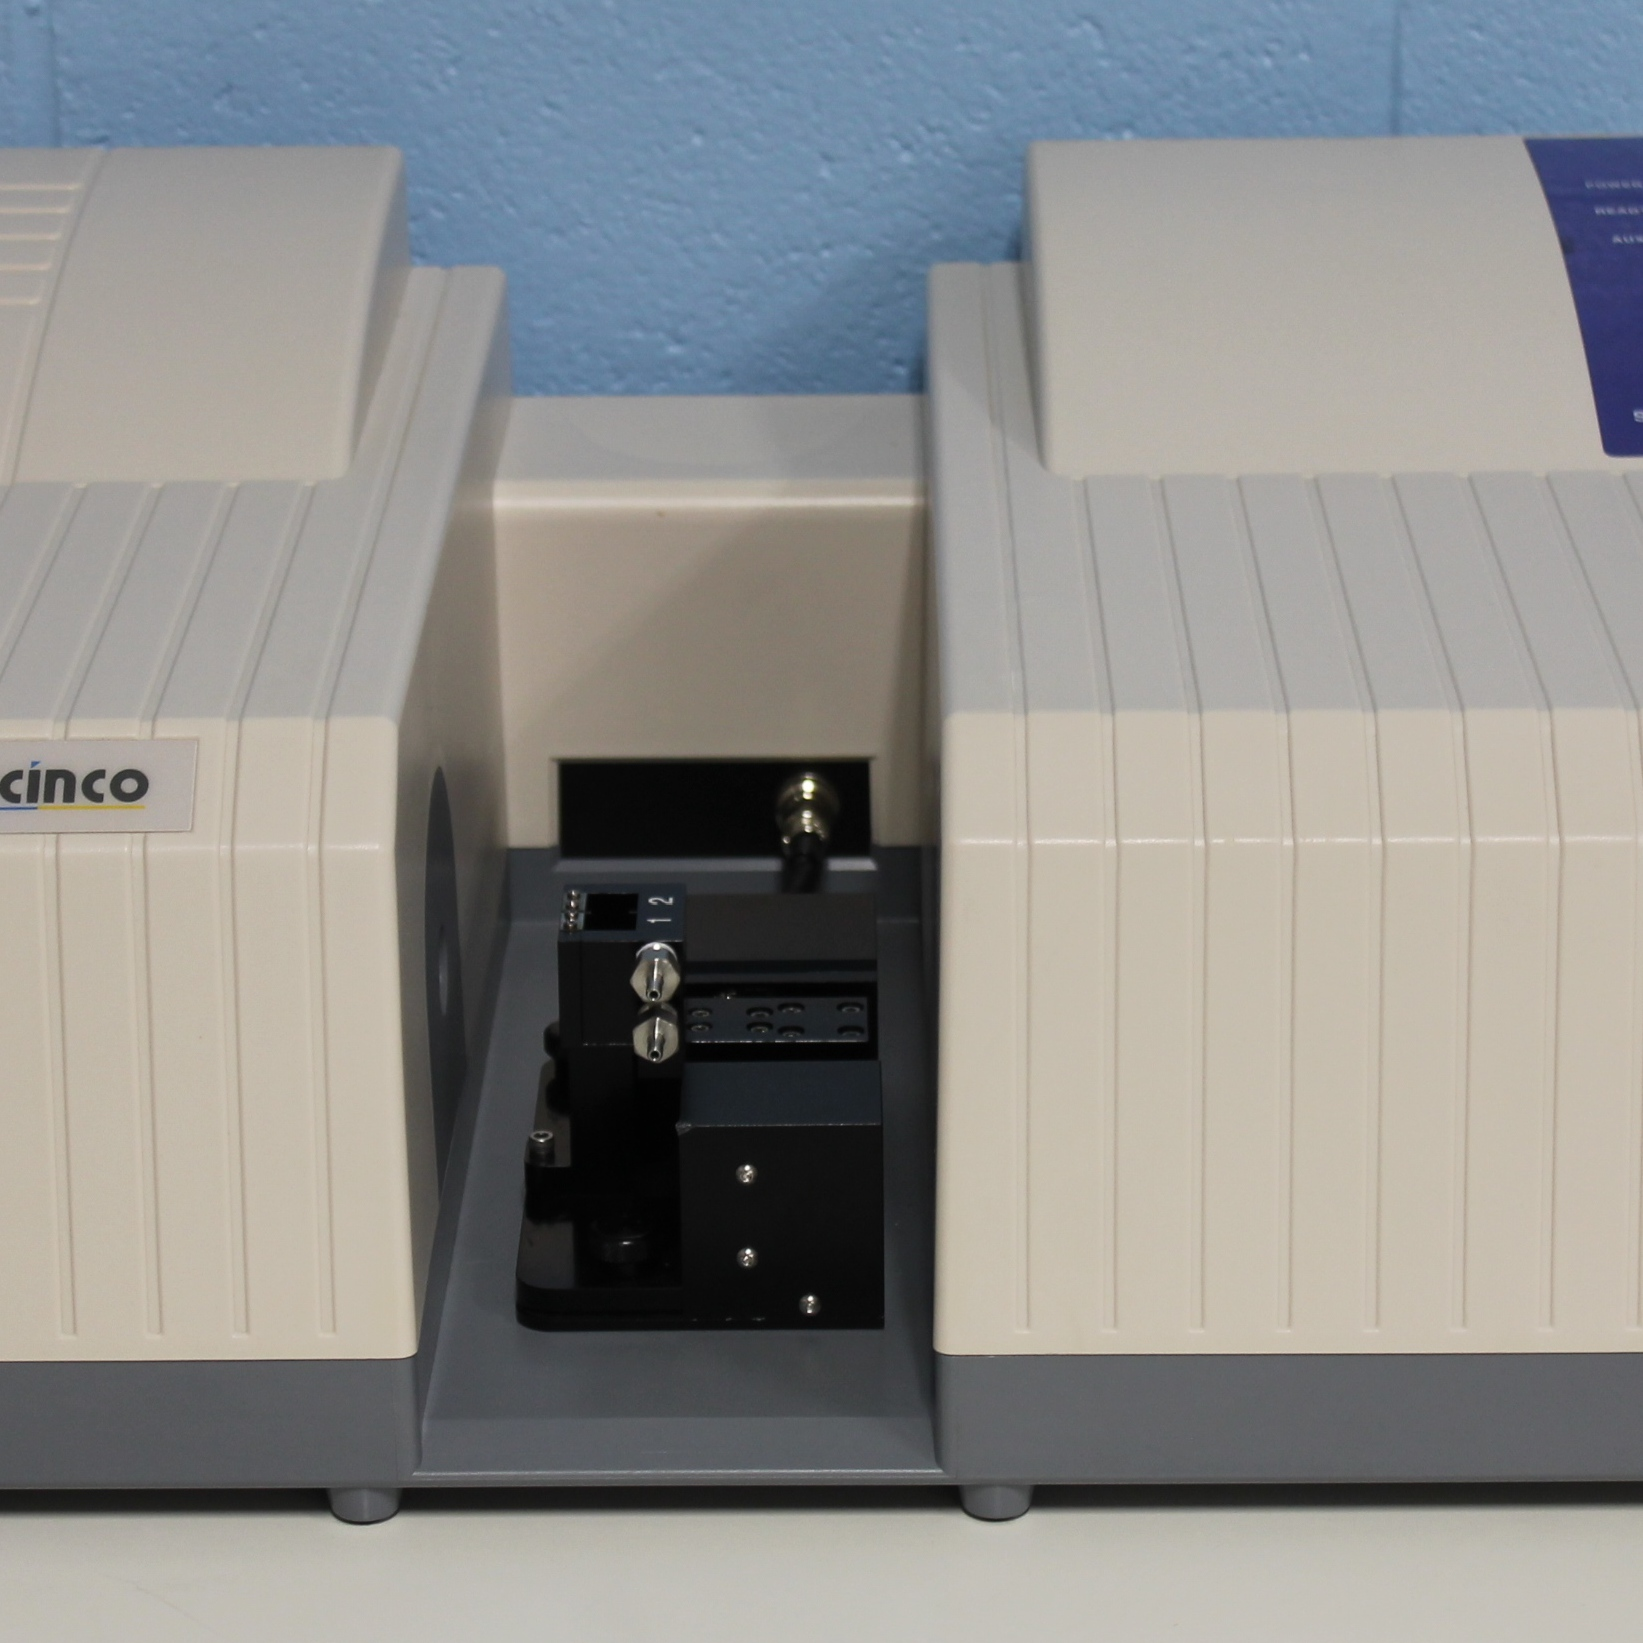 S-3150 UV-Vis Spectrophotometer Name